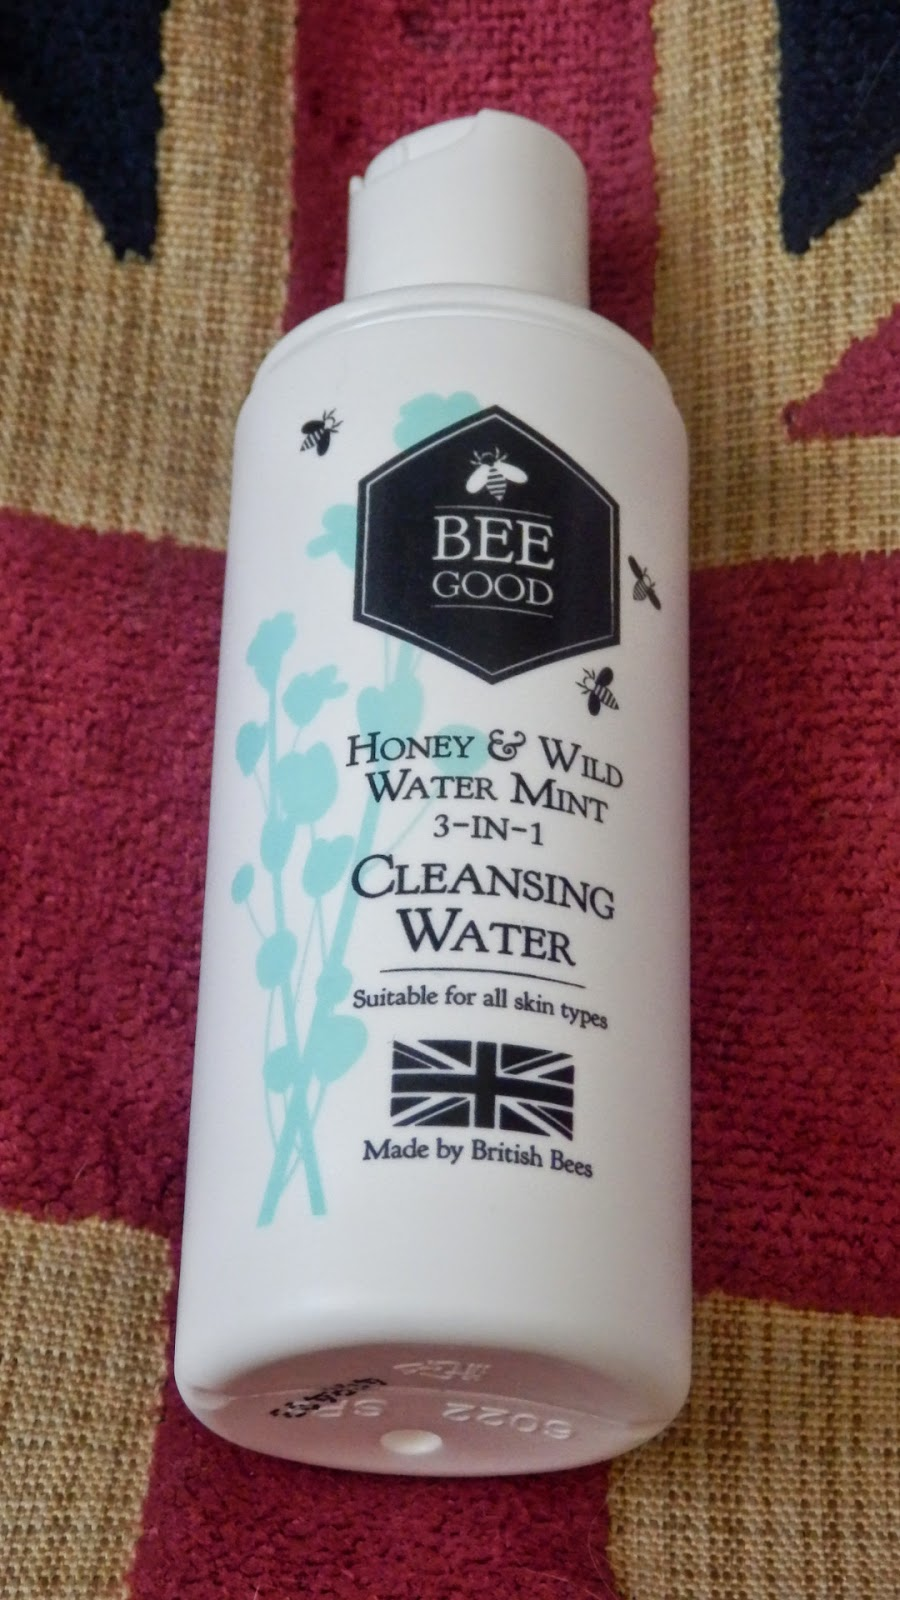 Bee Good Honey & Wild Water Mint 3 in 1 Cleansing Water